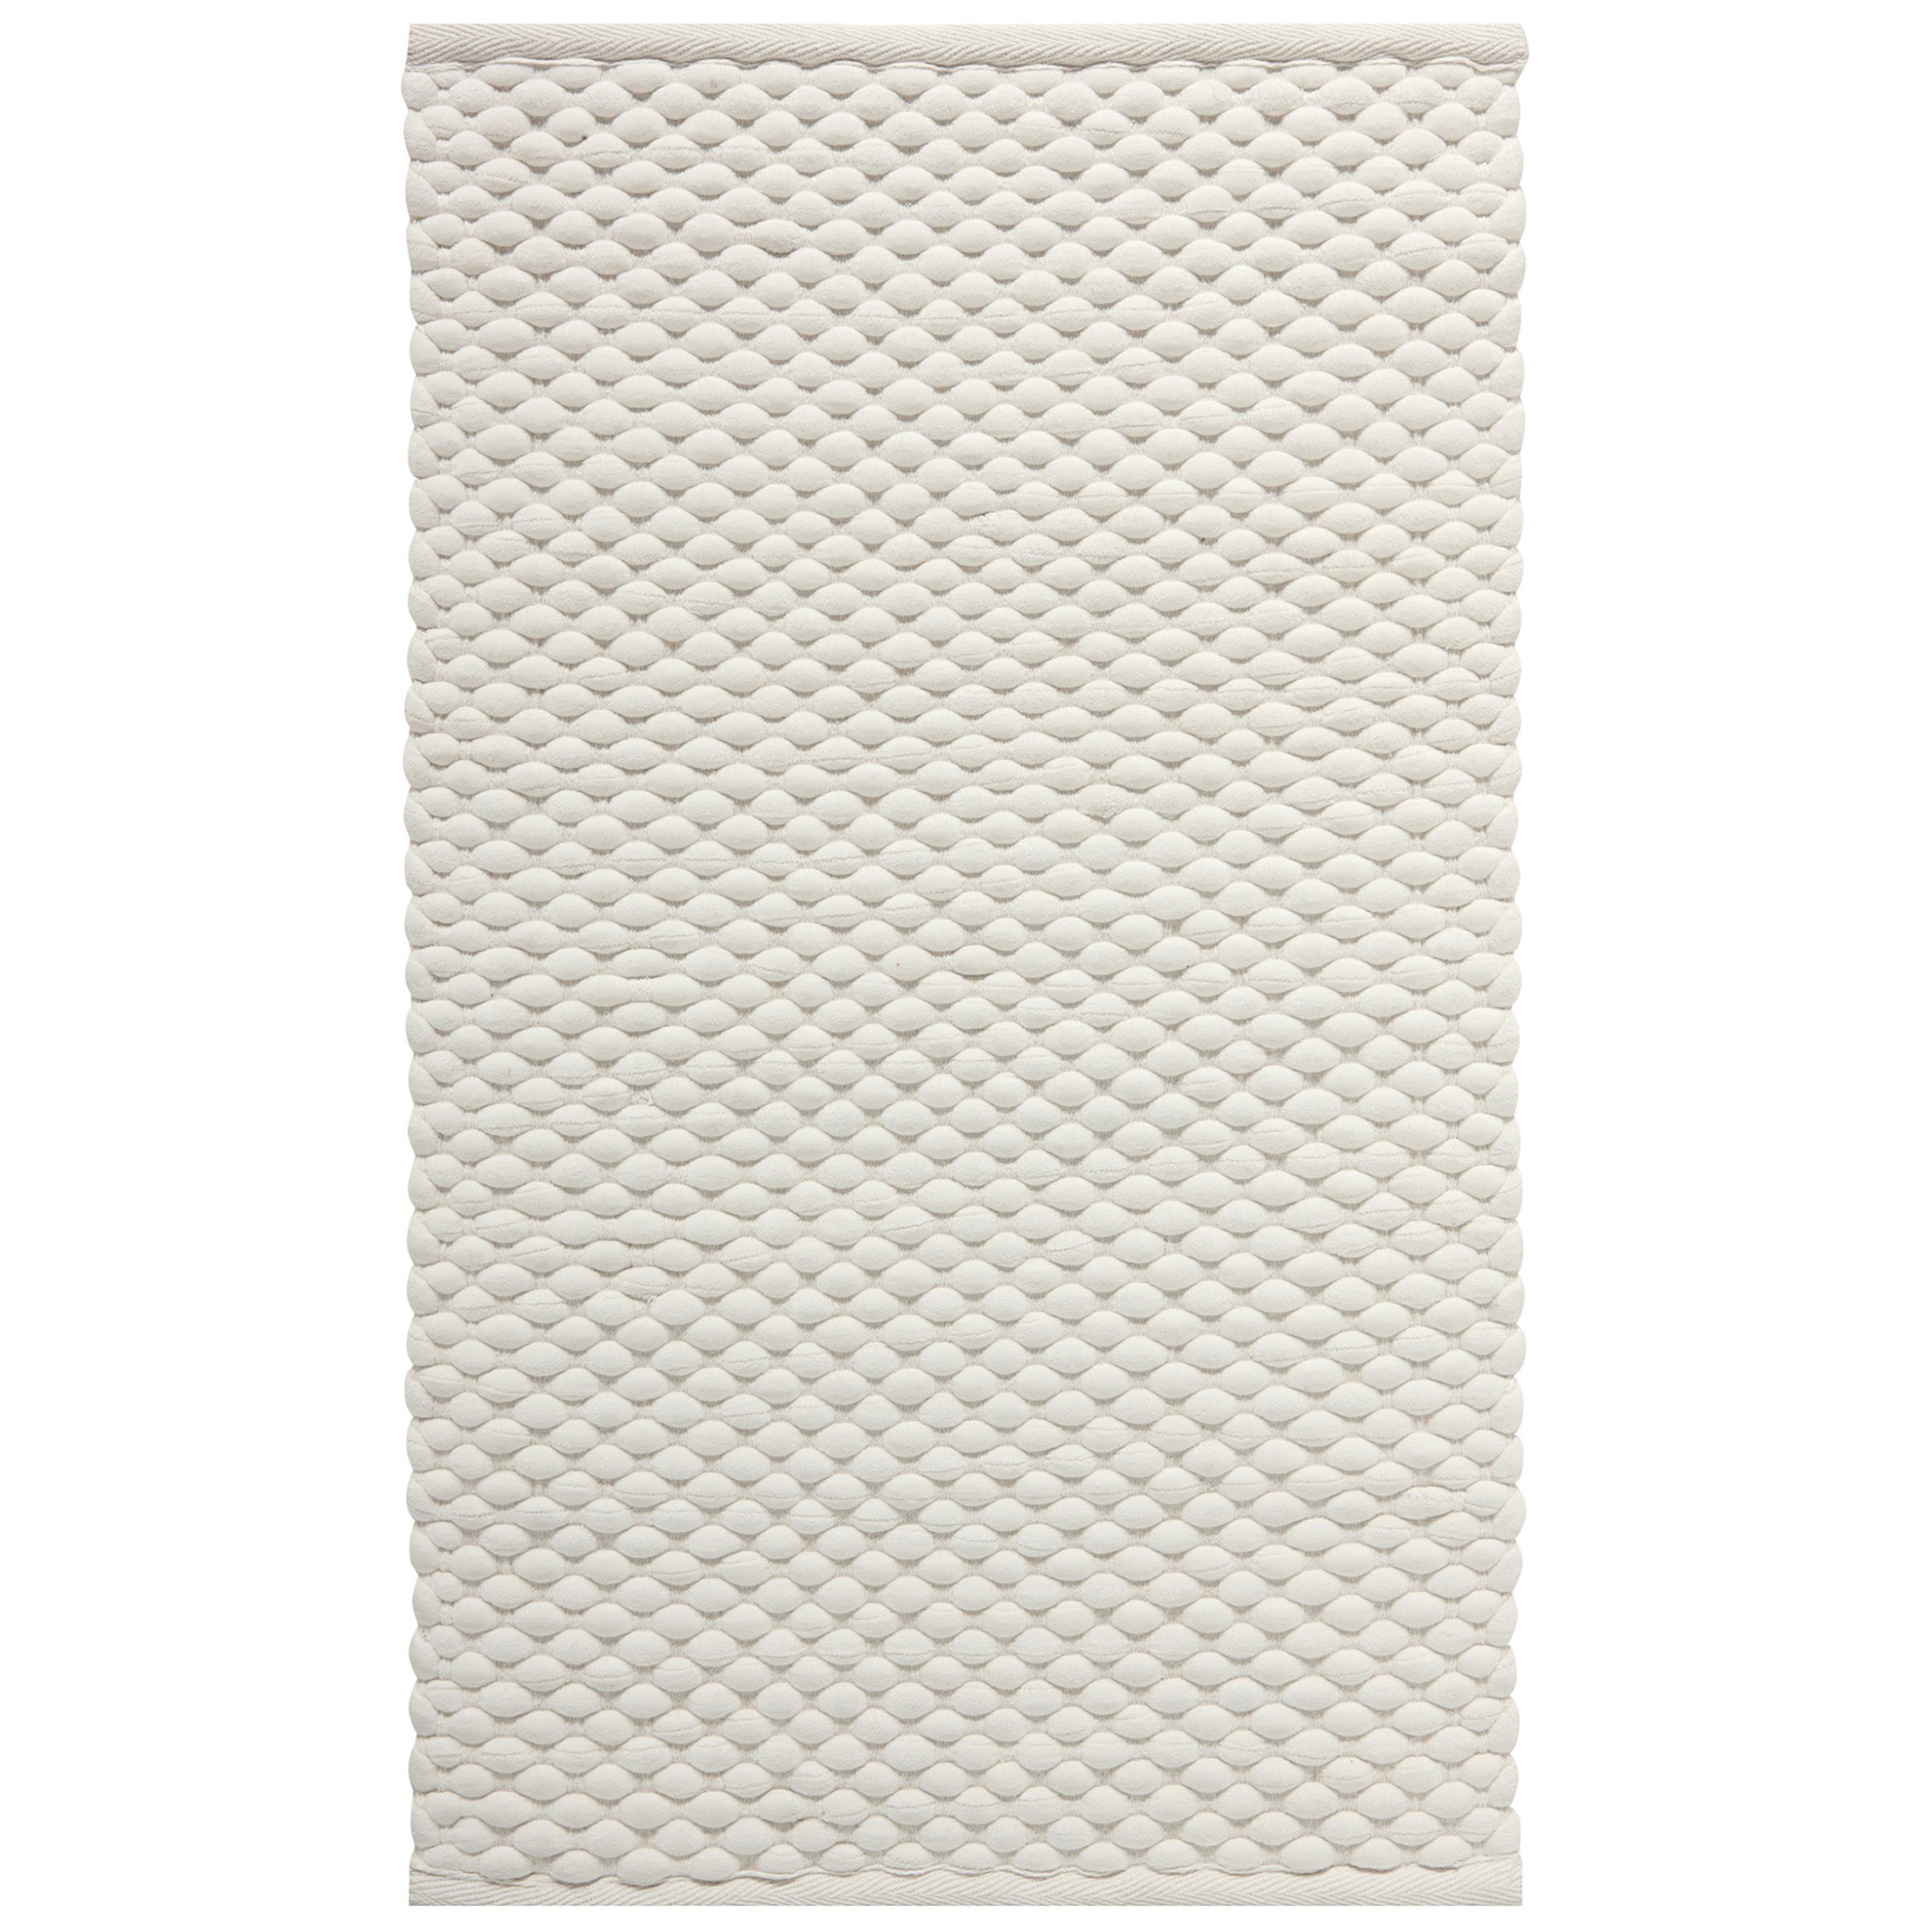 Aquanova Maks Handcrafted Cotton Bath Mat, 100x60cm, Ivory